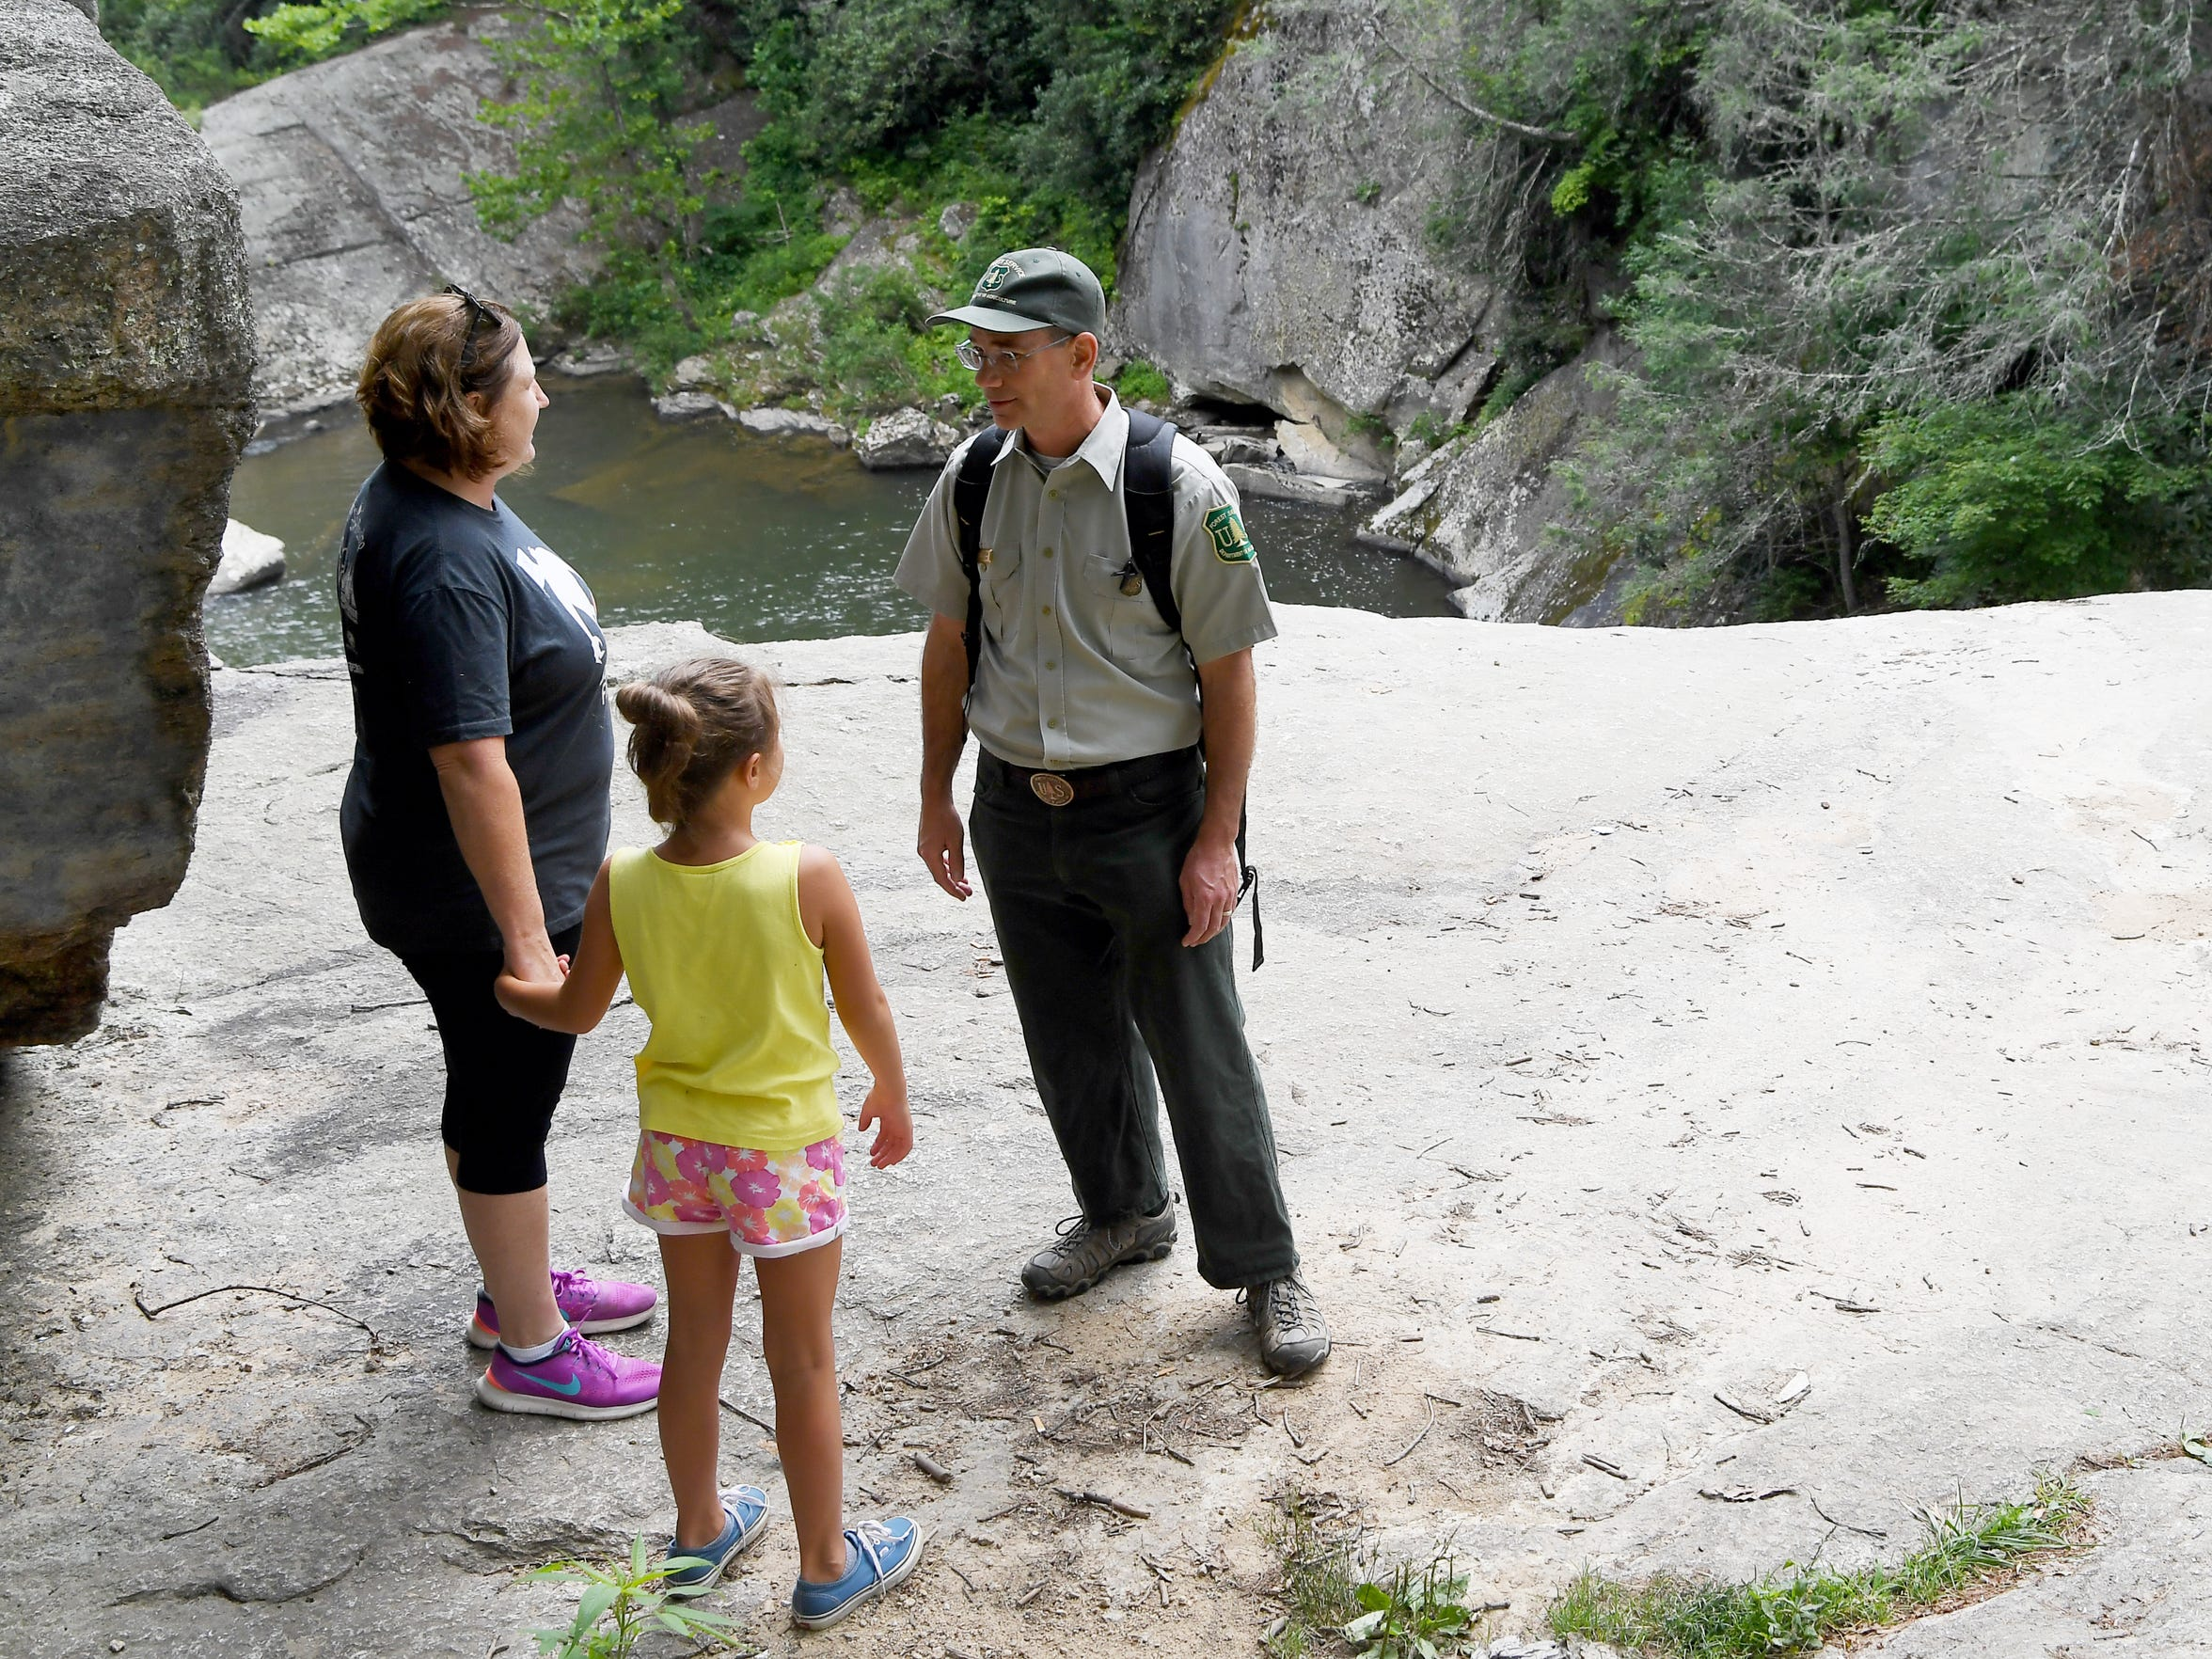 Richard Thornburgh, Appalachian District Ranger with the US Forest Service, talks with Dell Lowe and her daughter Ali, 8, at the top of Elk River Falls July 20, 2018.